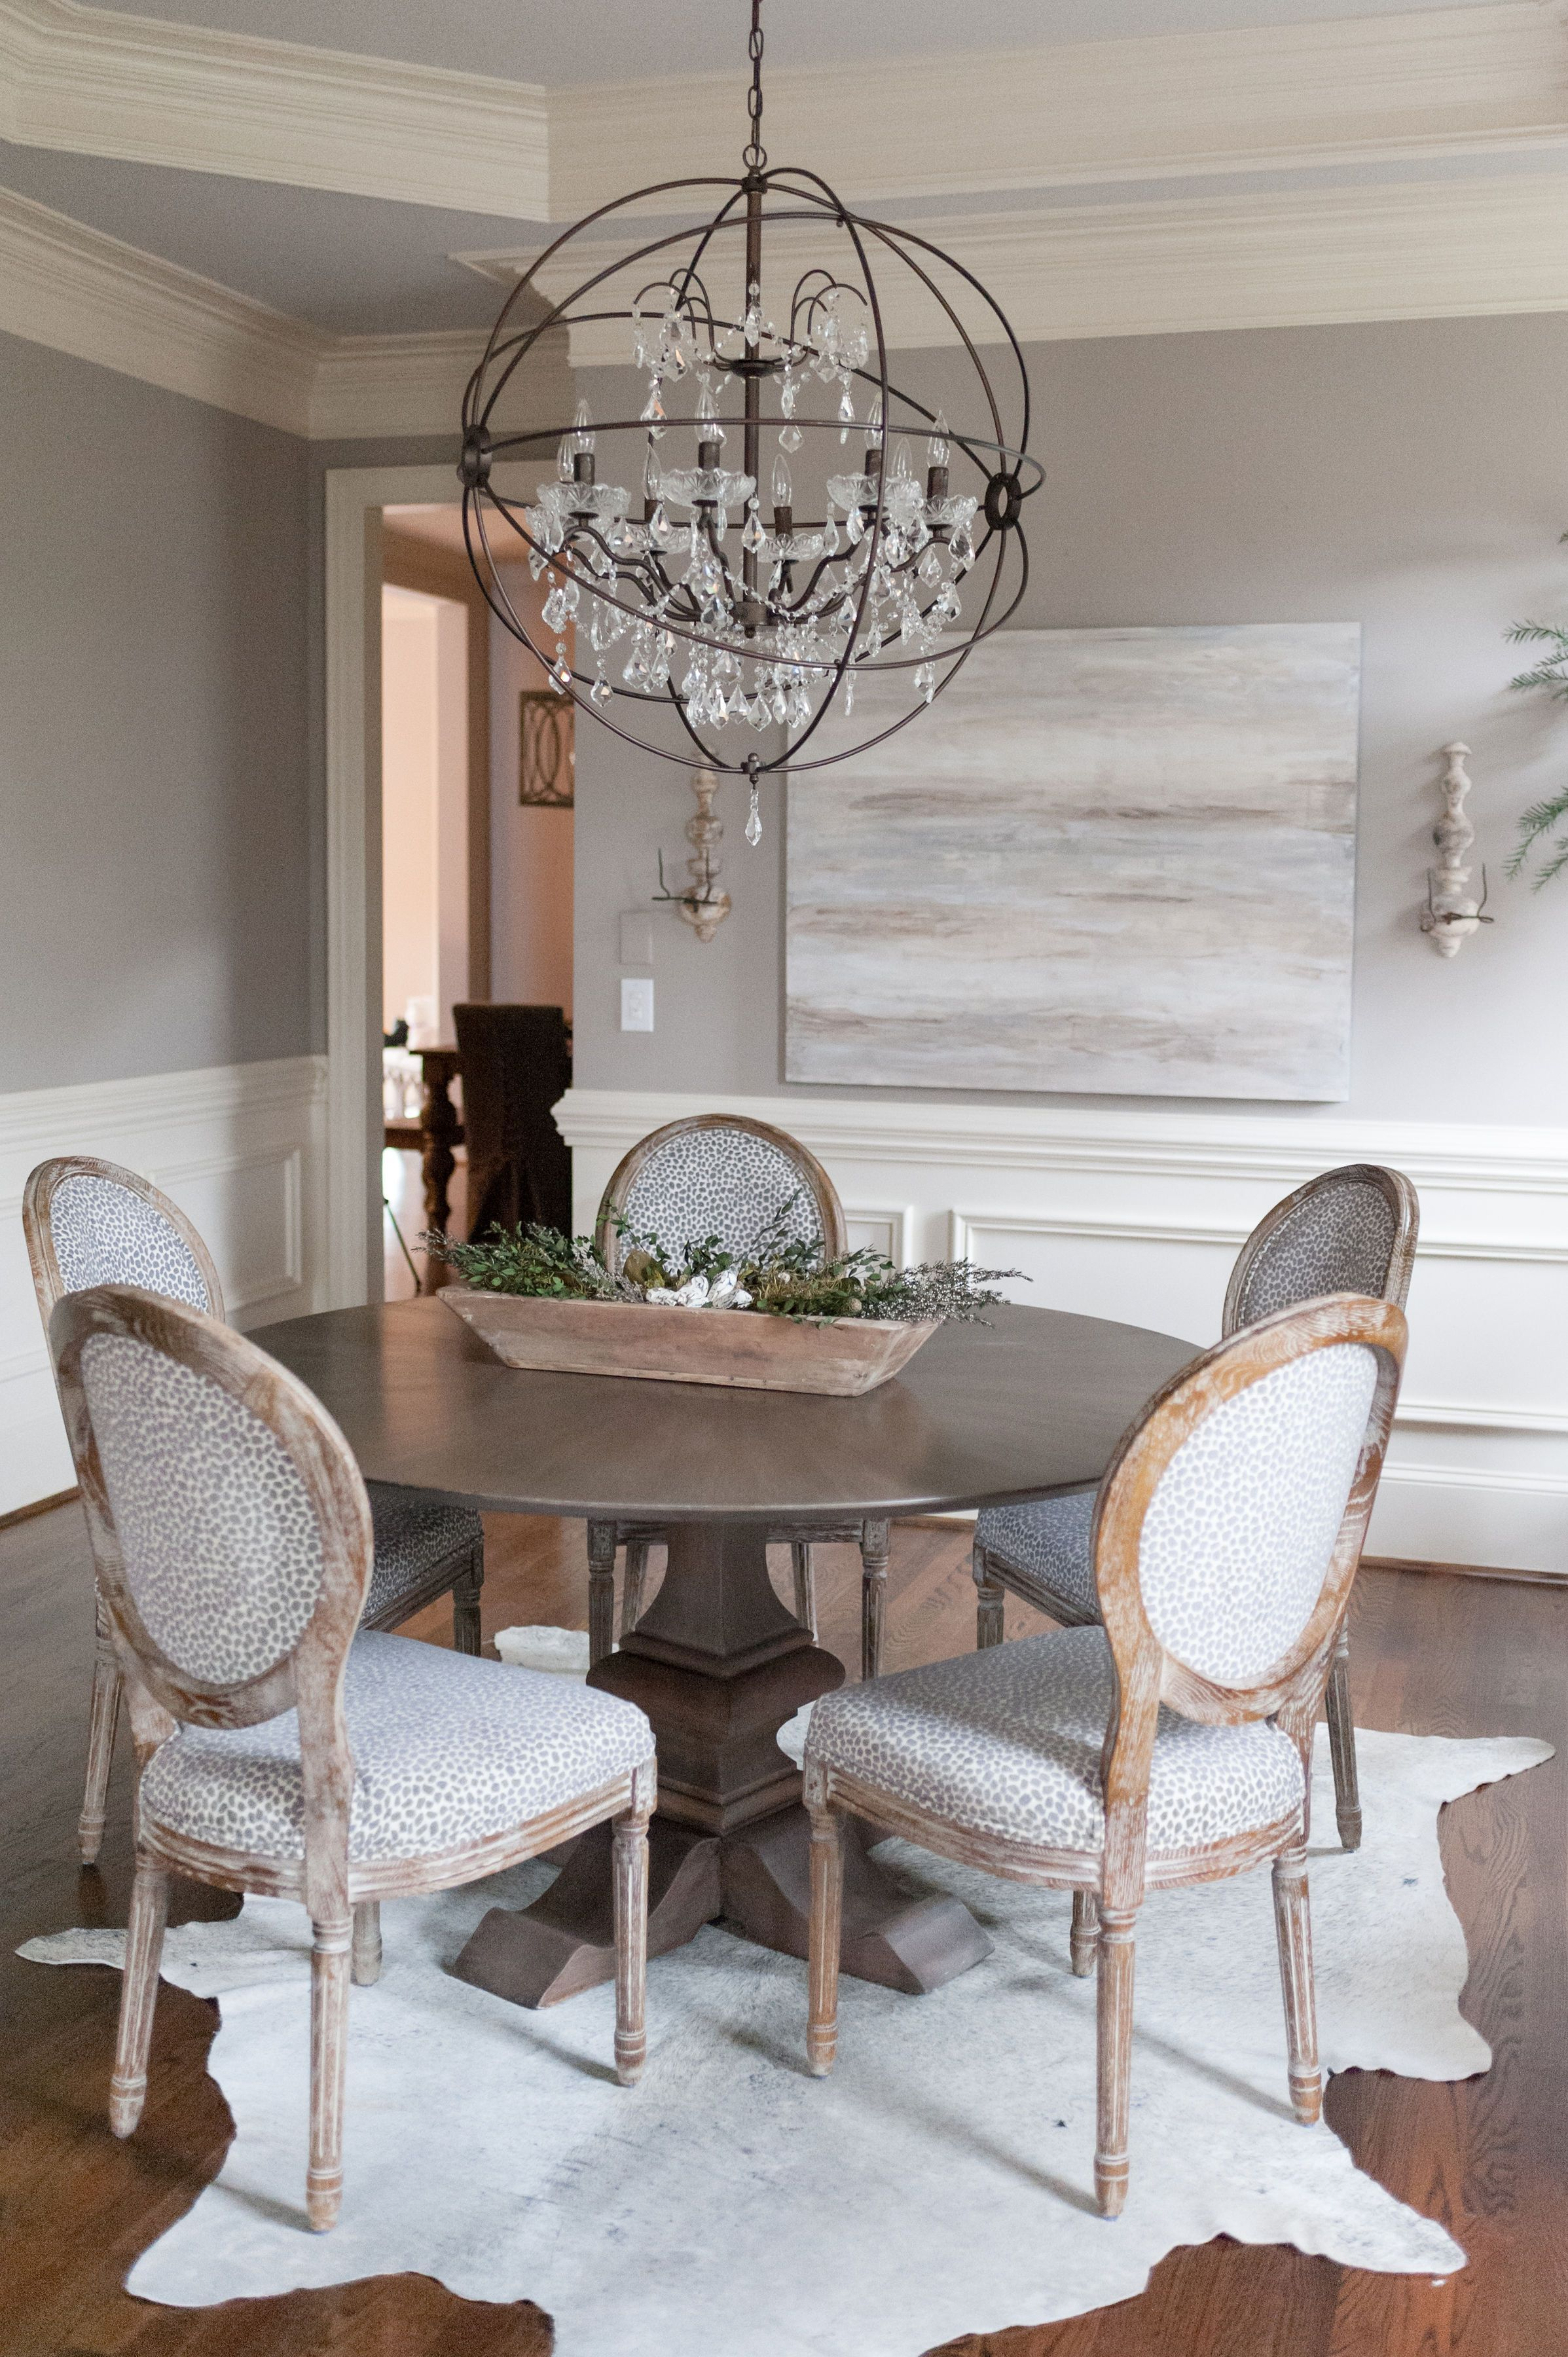 This Gorgeous Romantic Transitional Dining Room Is The Work Of Award Winning Na In 2020 Transitional Dining Room Transitional Interior Design Dining Room Inspiration